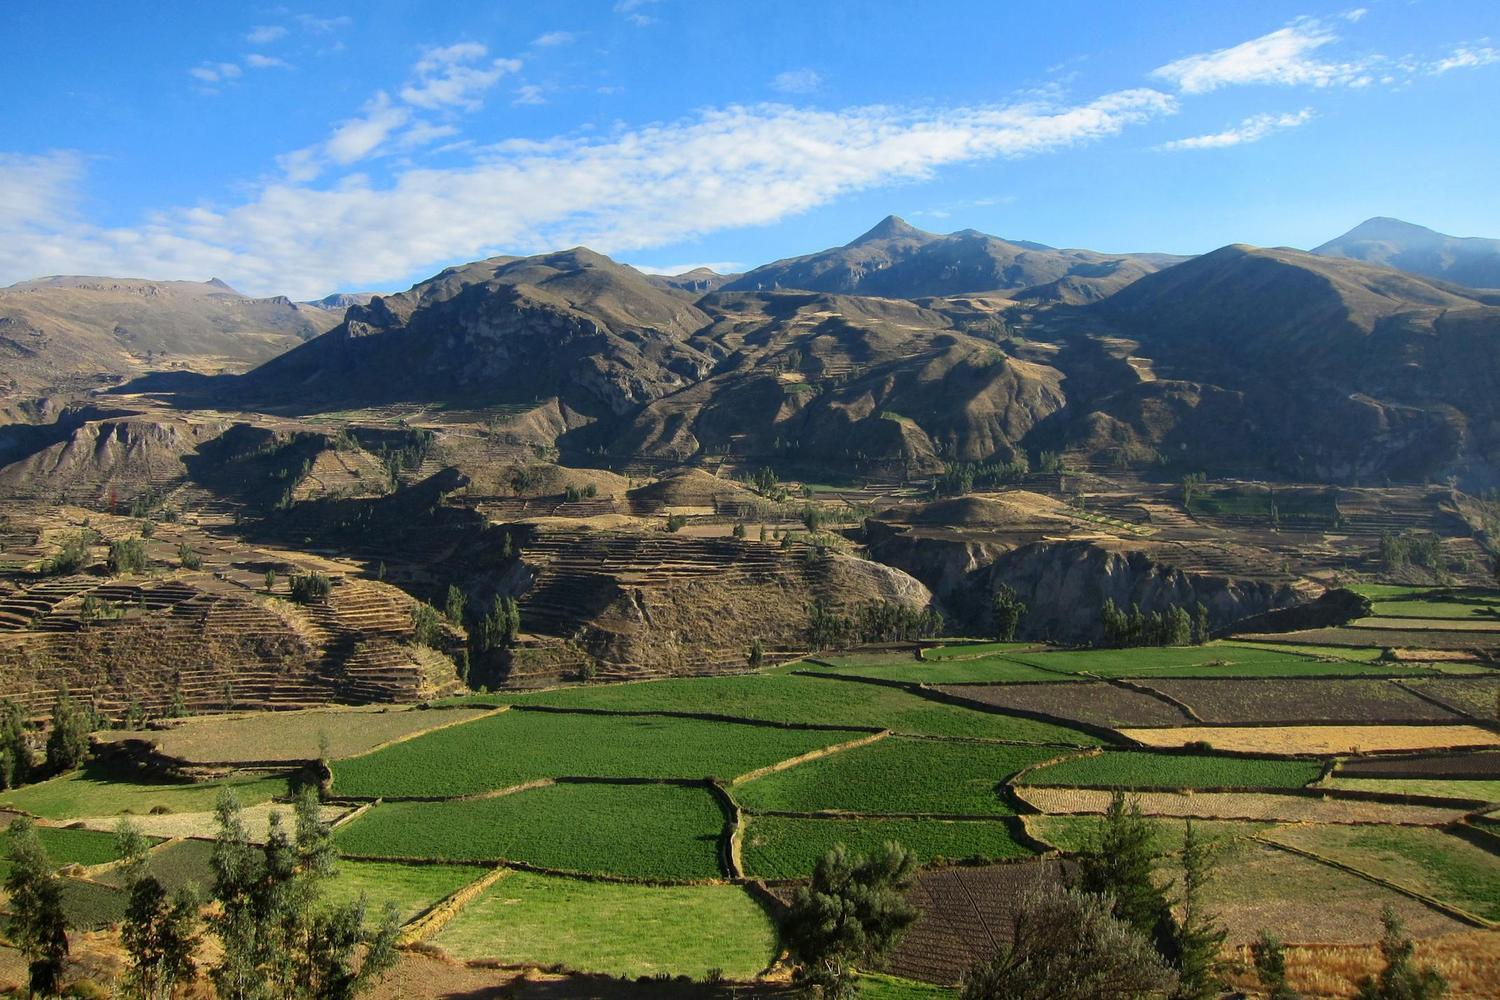 Looking out over the Colca Canyon in southern Peru